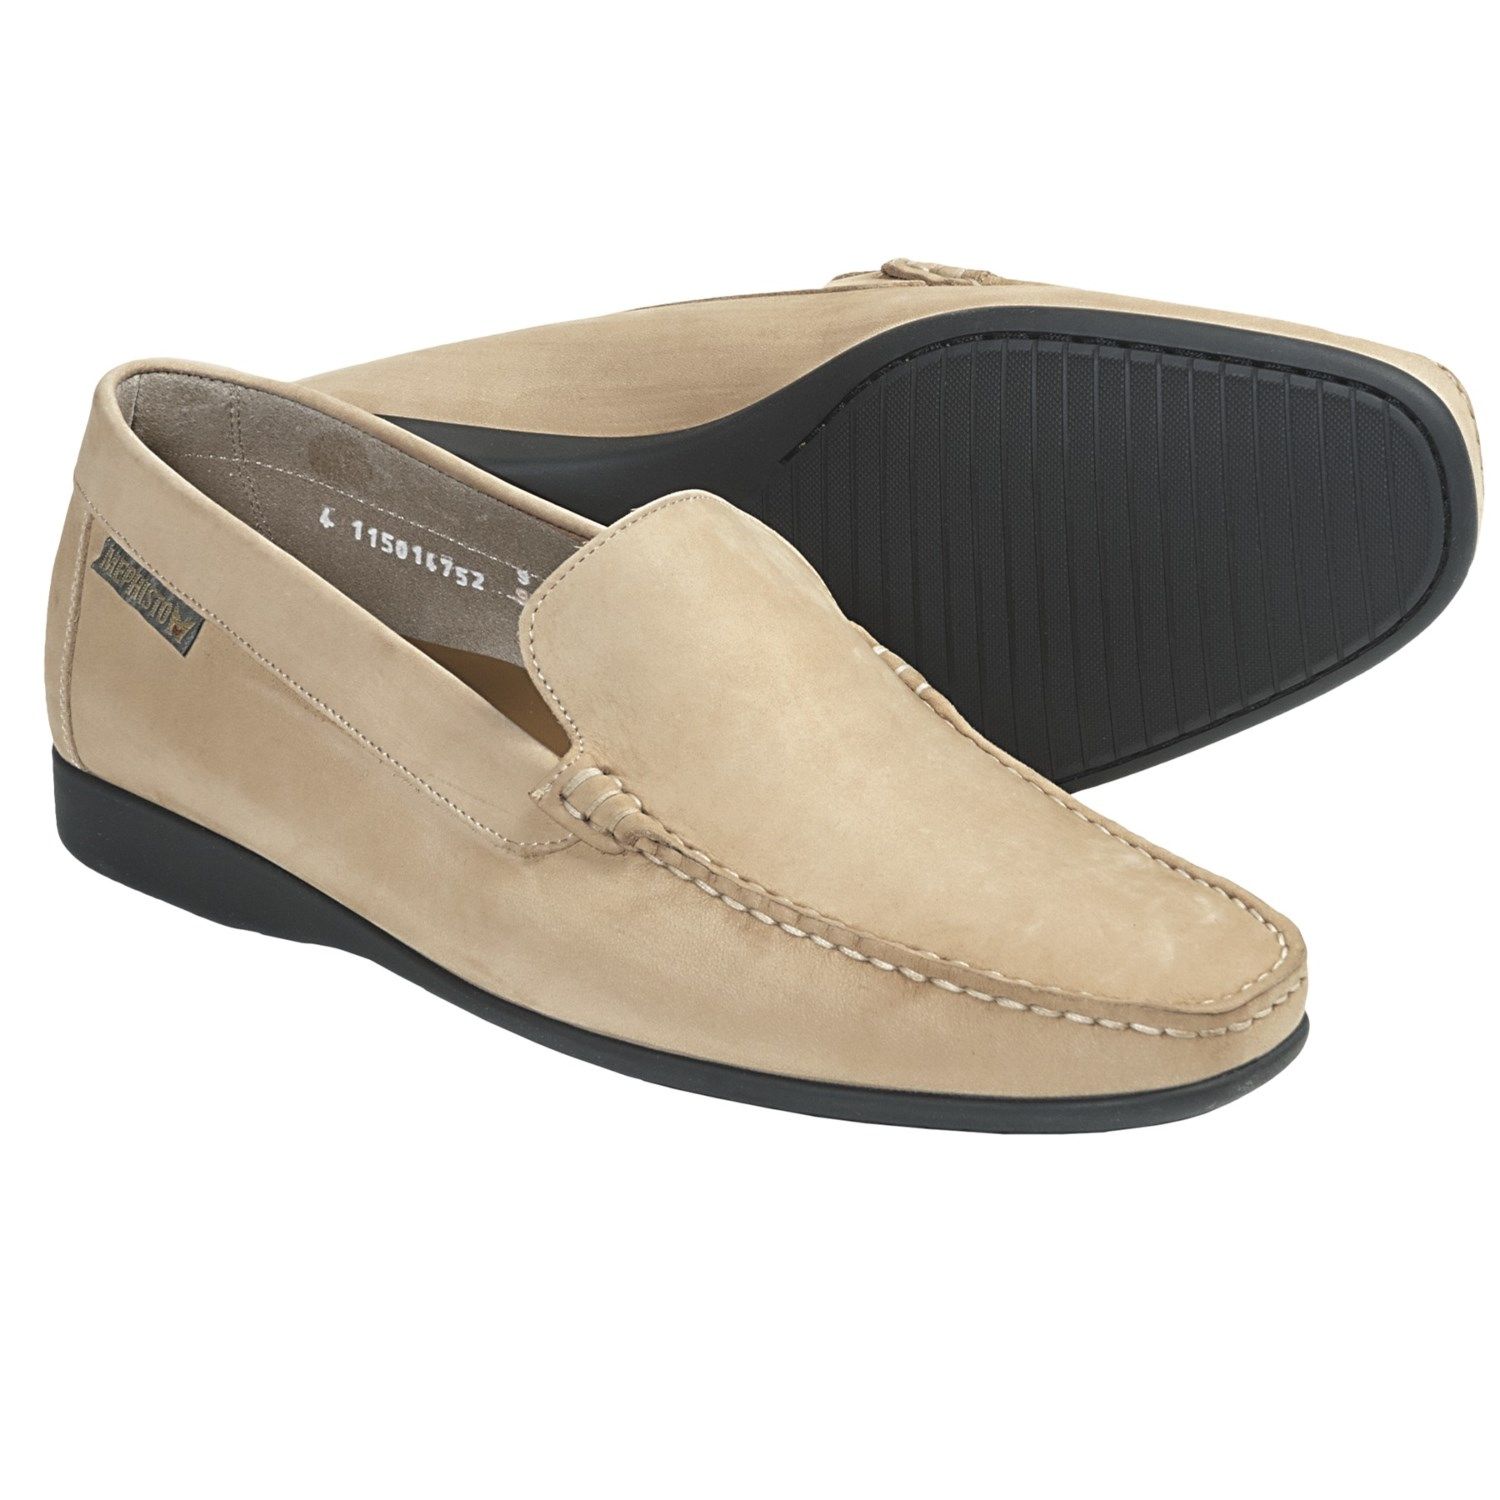 mephisto klaus shoes leather slip ons for save 25